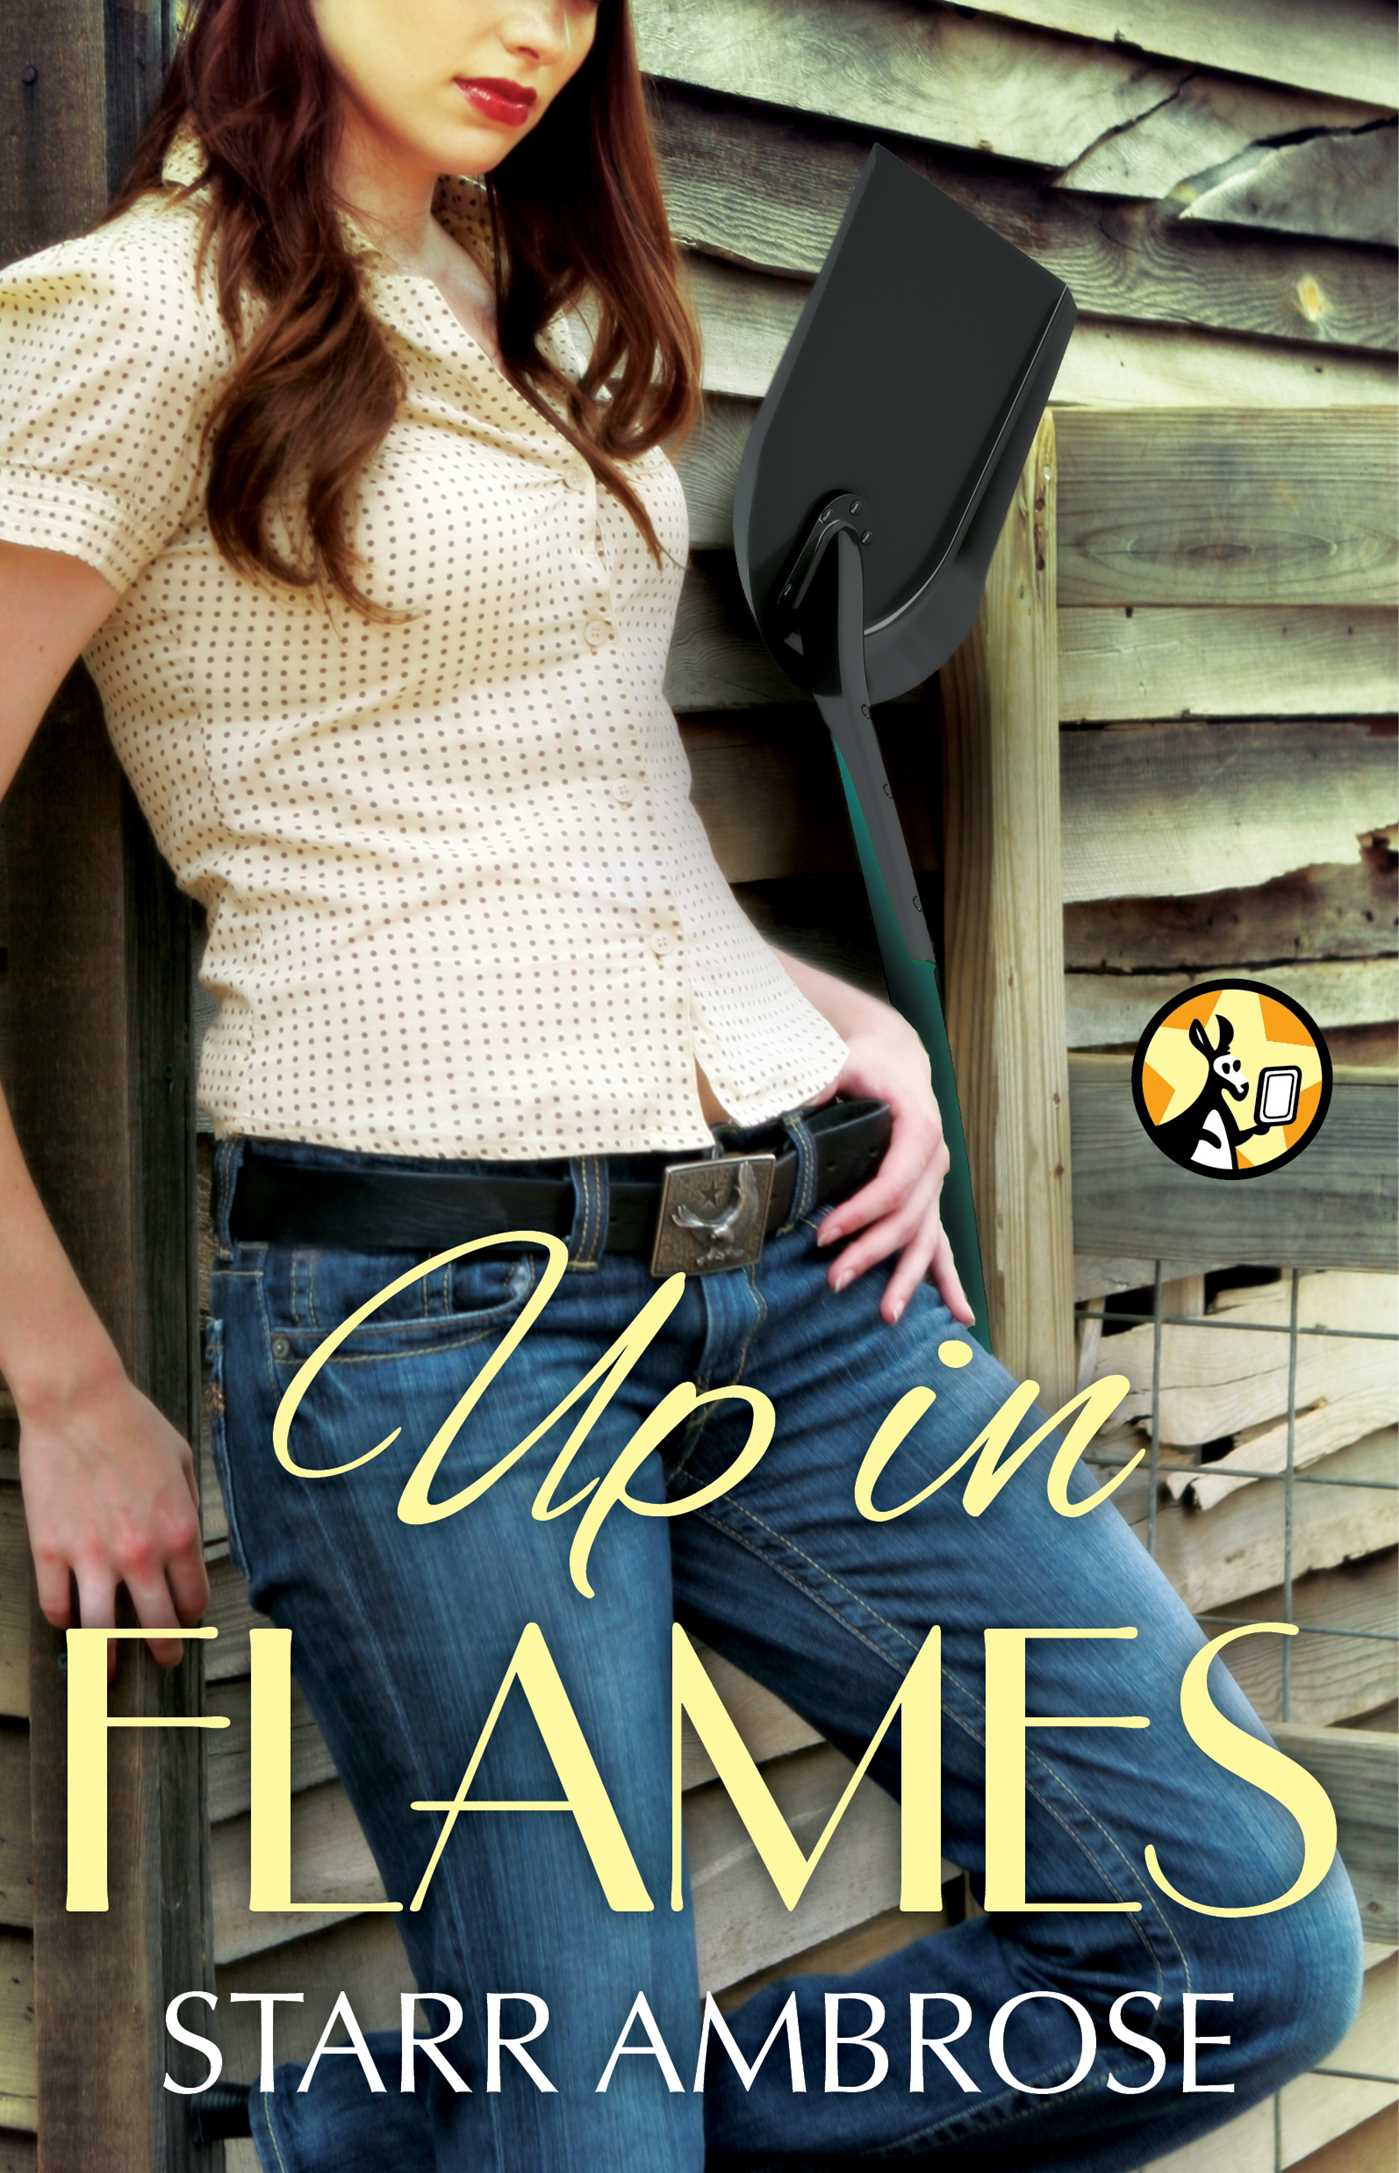 Up-in-flames-9781476716114_hr